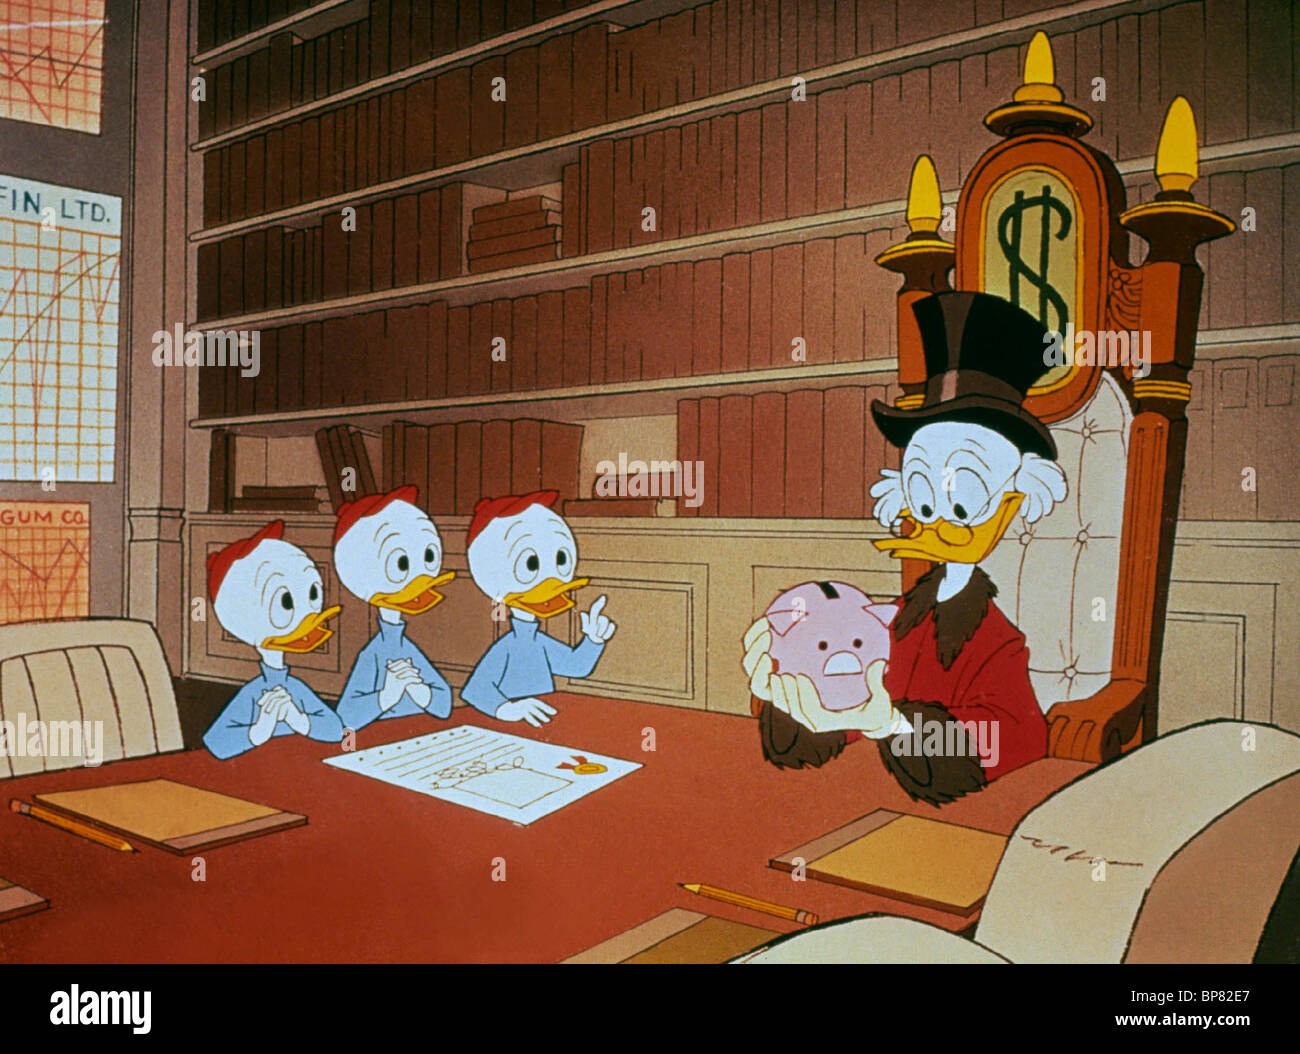 scrooge mcduck stock photos scrooge mcduck stock images alamy